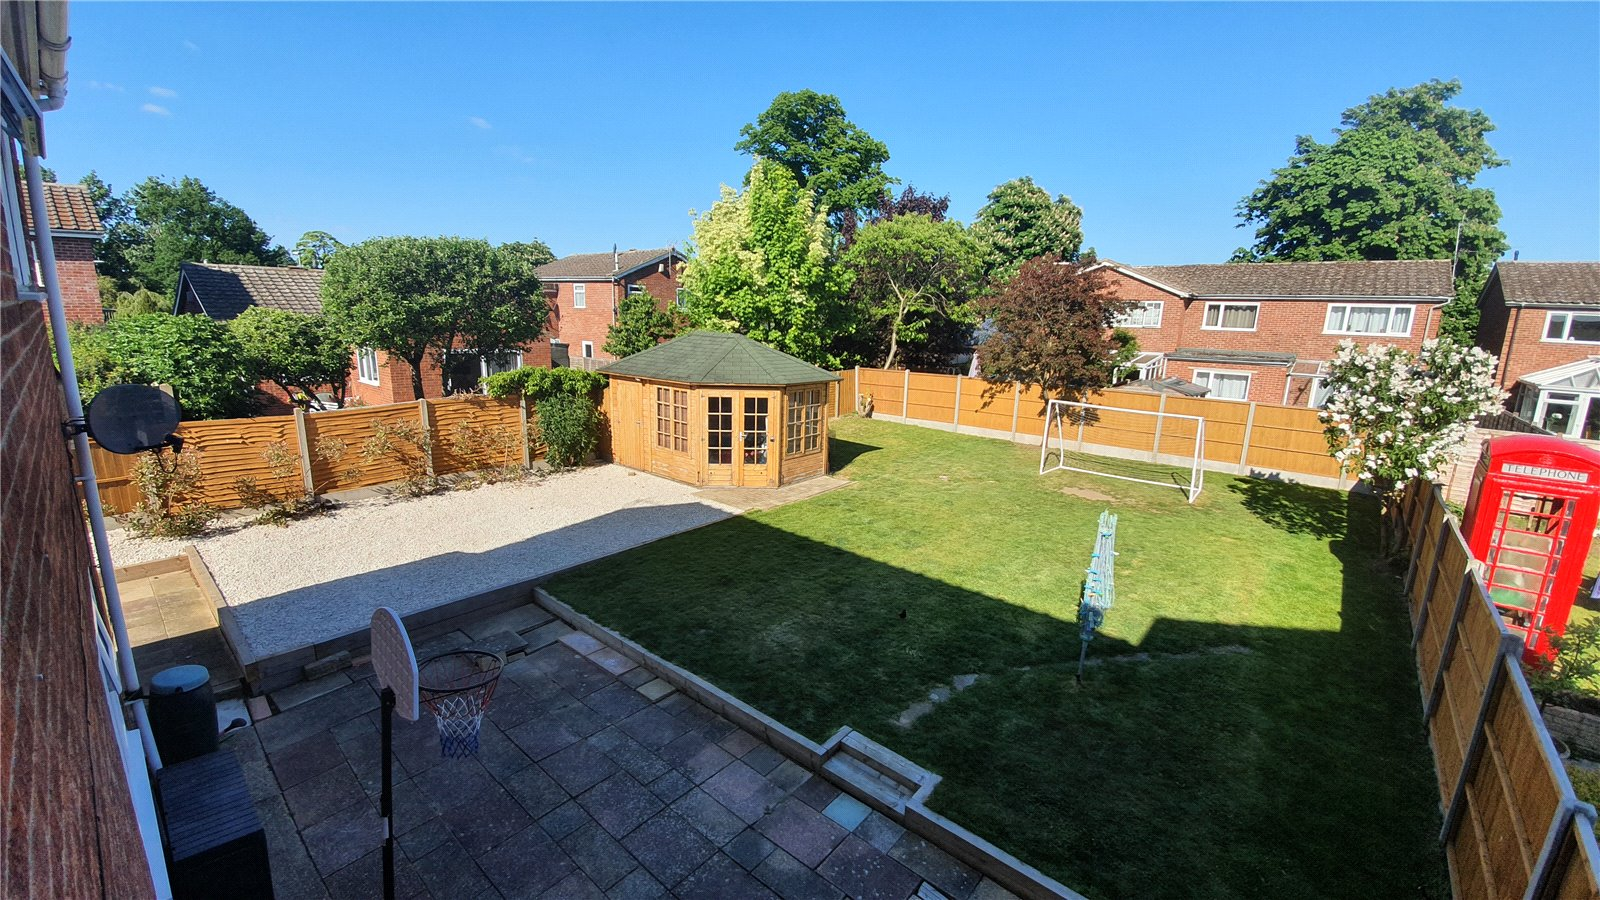 3 bed house for sale in The Sycamores, Little Paxton 3